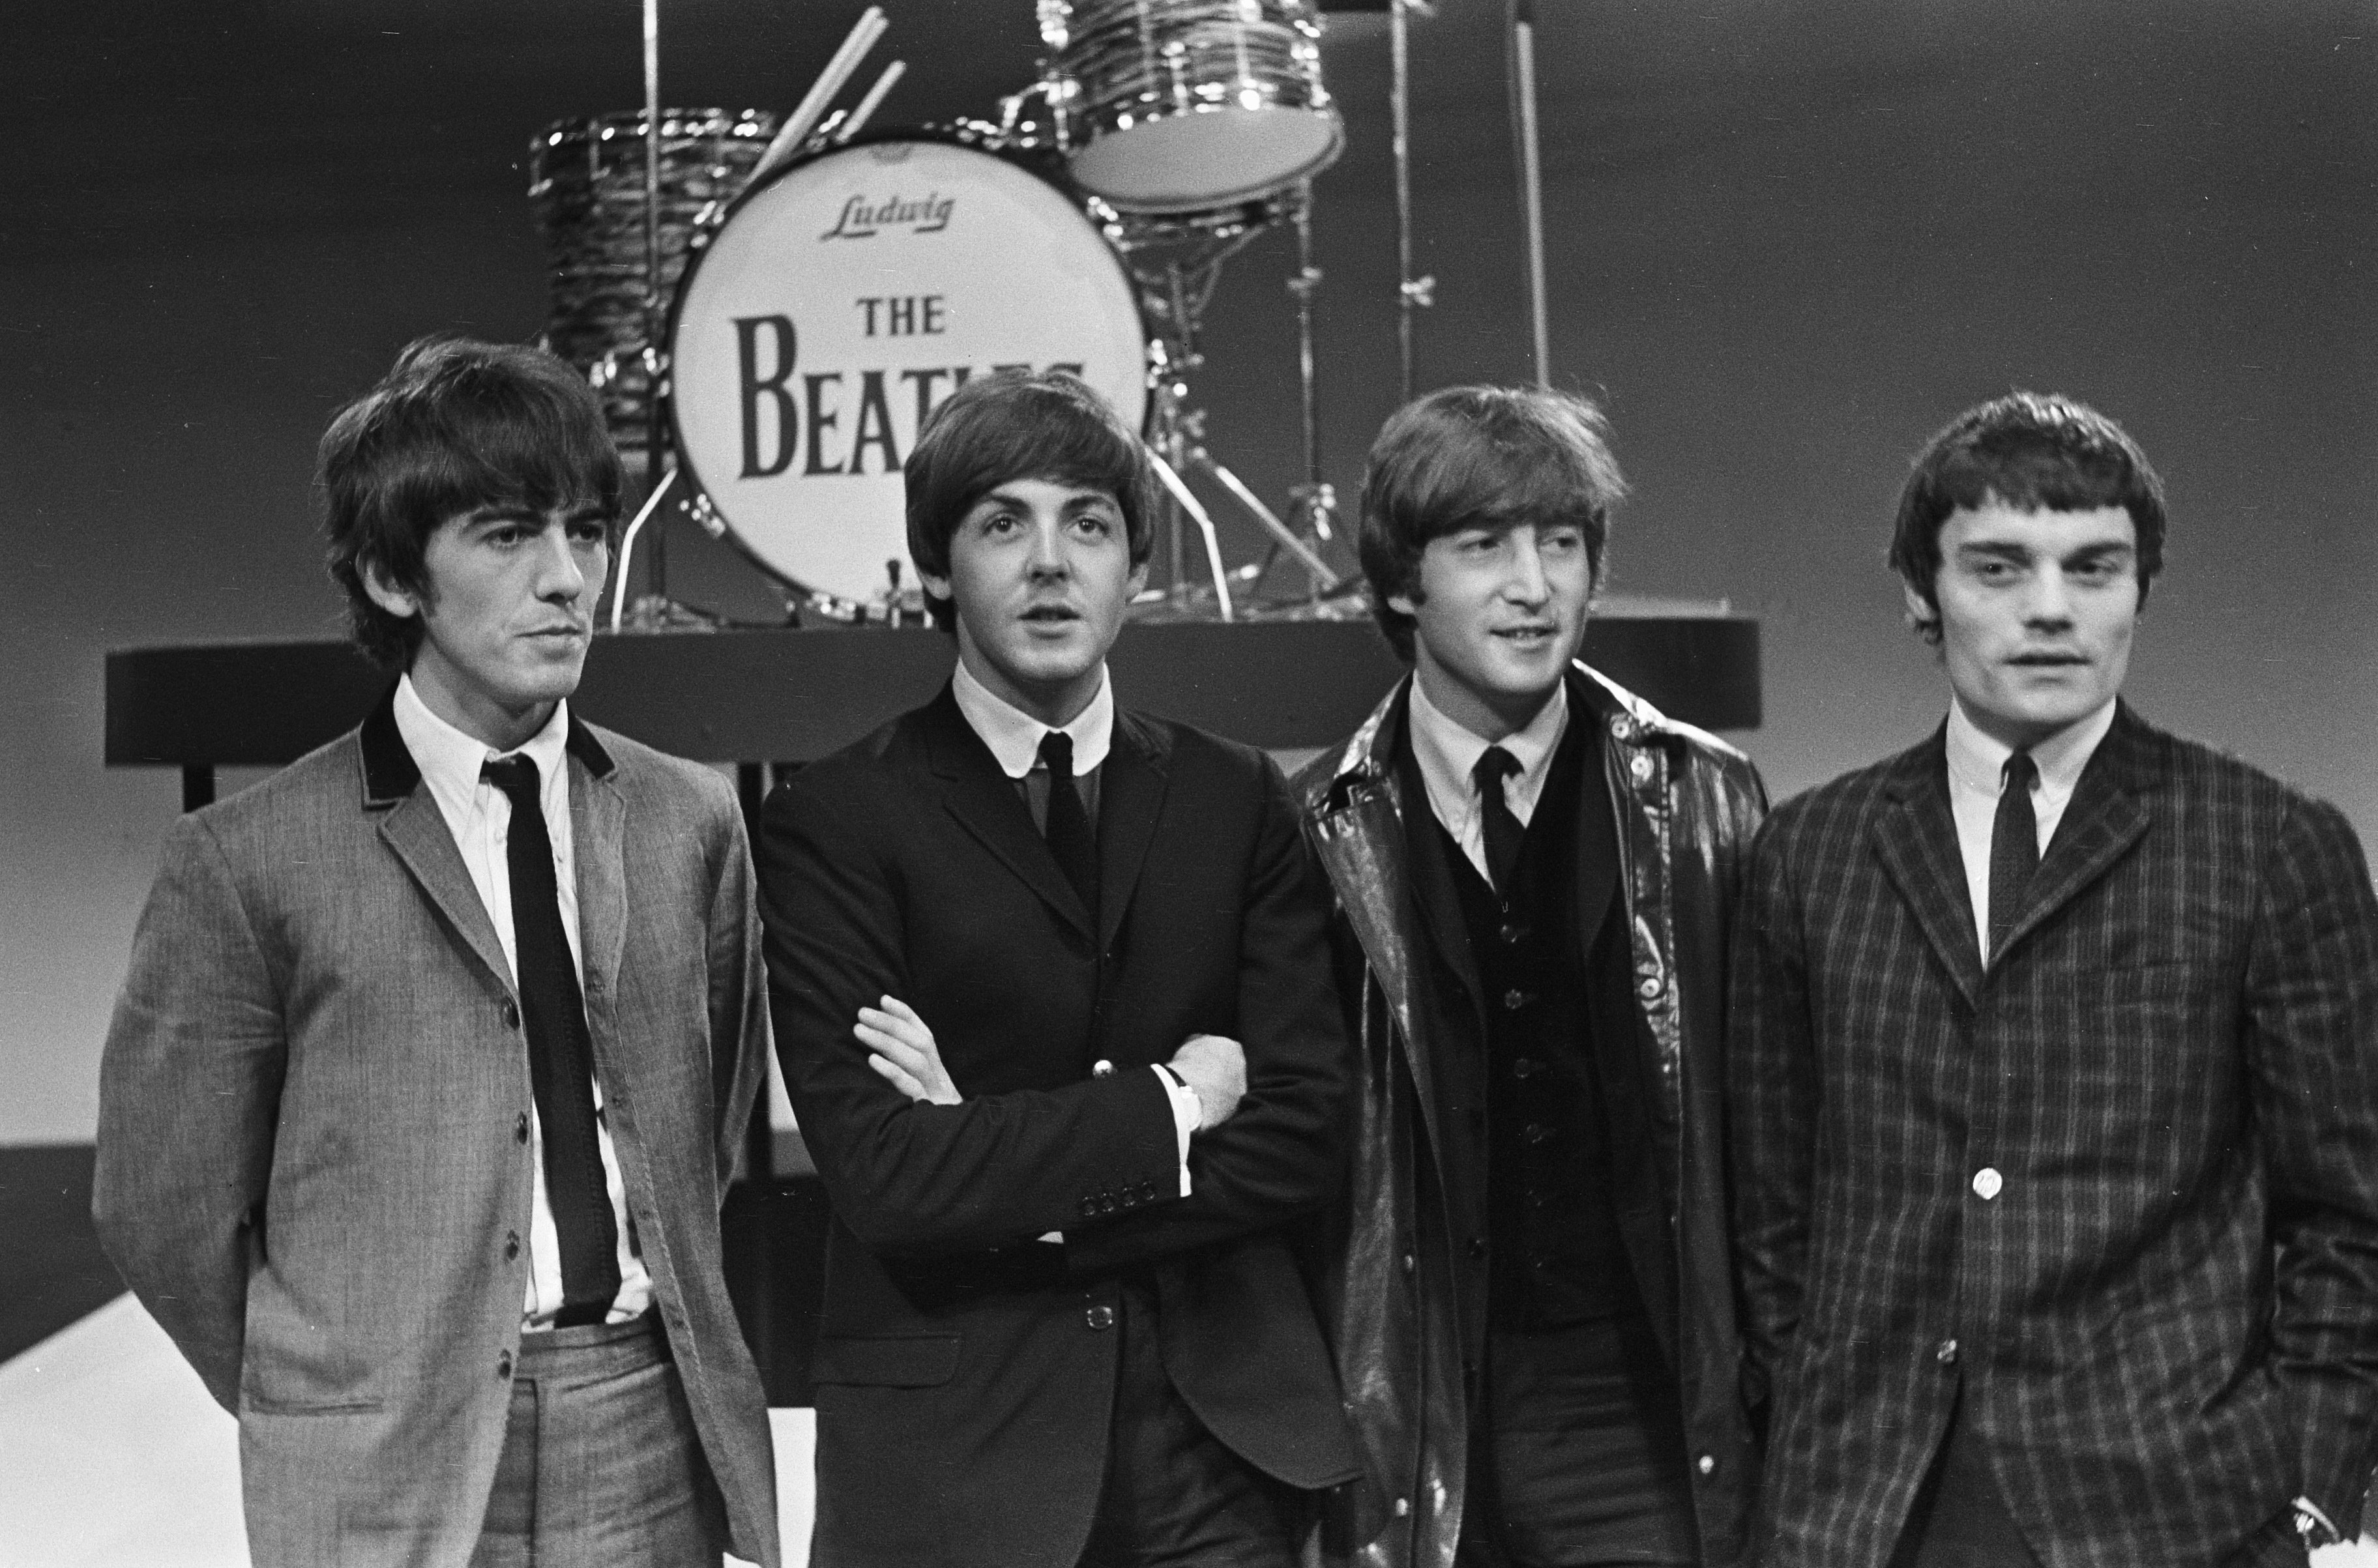 File:The Beatles with Jimmie Nicol 916-5098.jpg - Wikimedia Commons